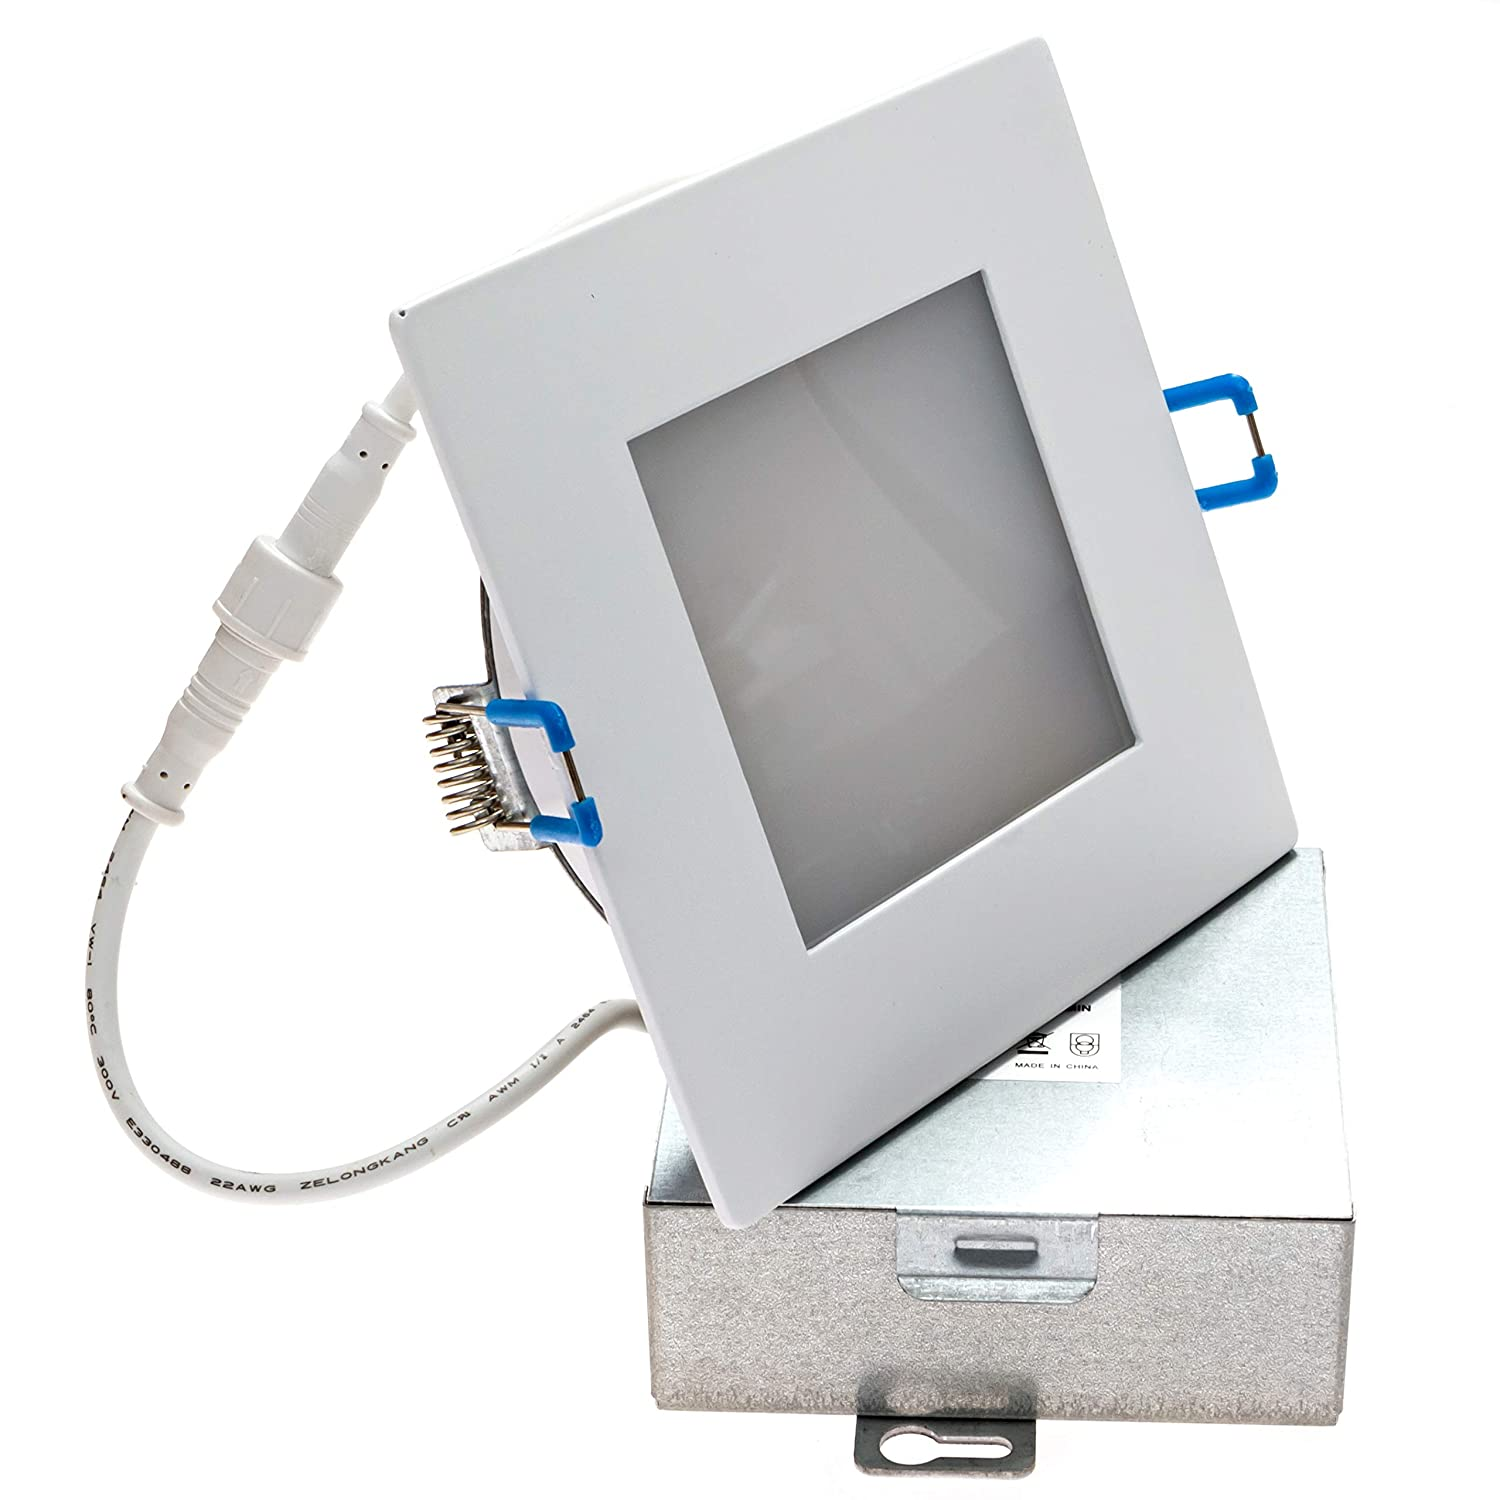 Goodlite G-83531 Slim LED 4 Recessed Ultra-Thin Square Ceiling Light-850 Lumens 4100K Cool White Energy Star IC-Rated Dimmable,Damp Location 12W CRI-90 120V